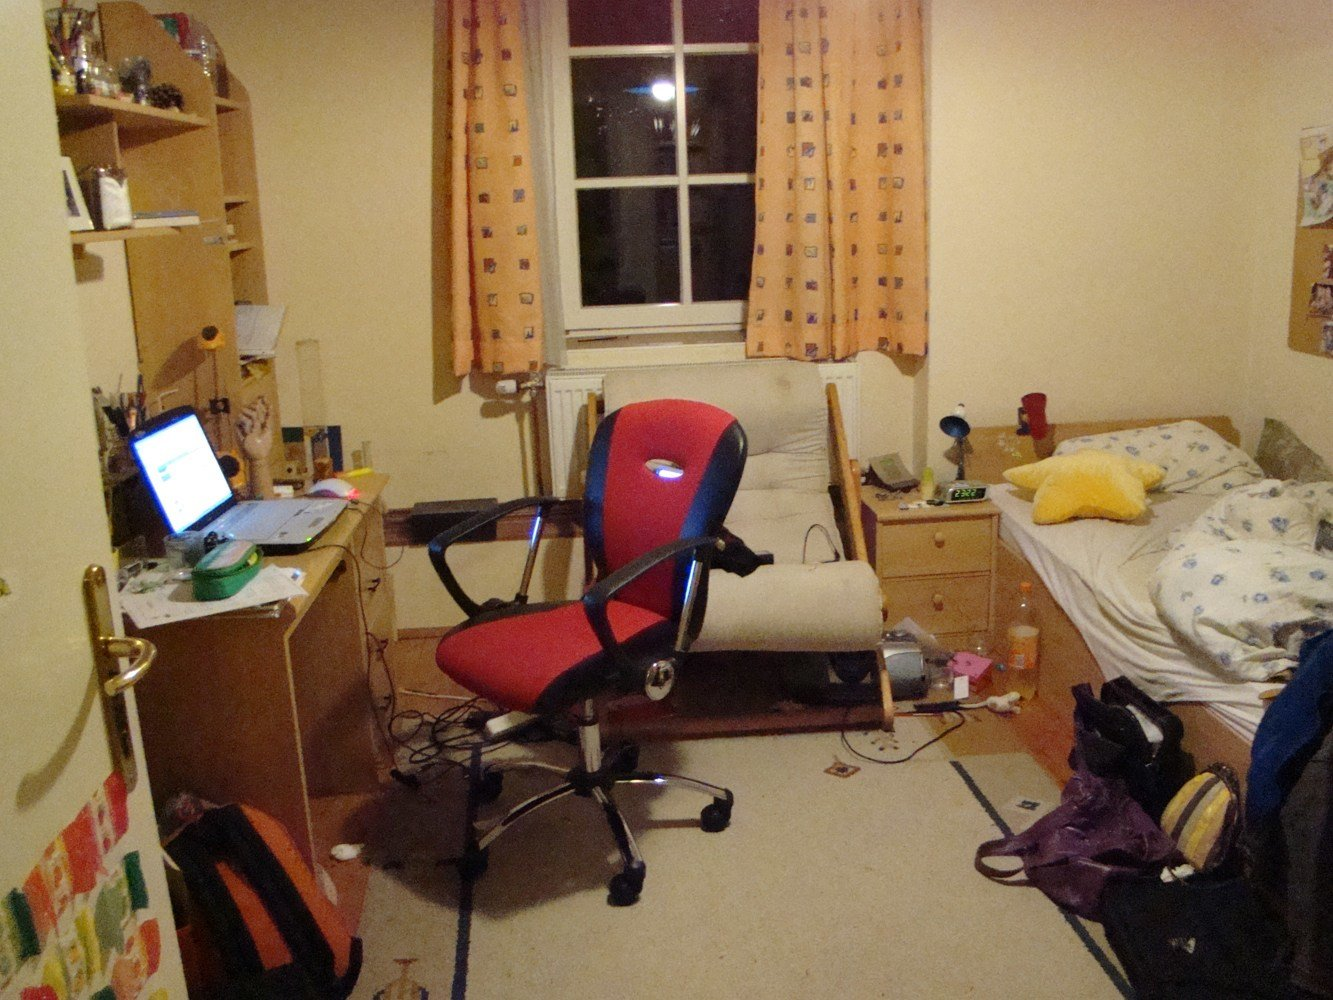 Best My Messy Room Lol House Md Fans Photo 5071472 Fanpop With Pictures